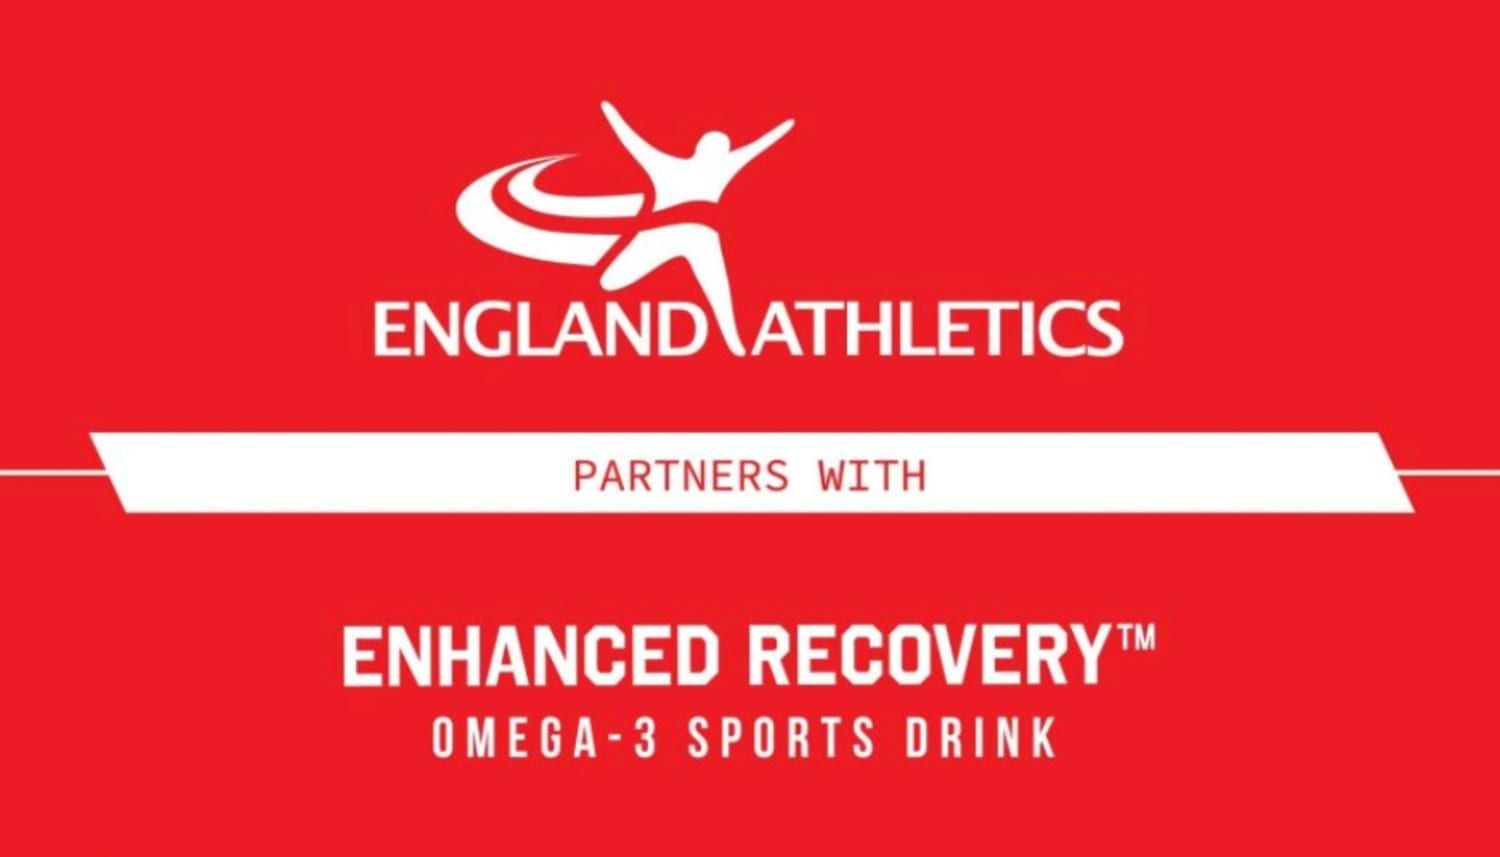 England Athletics announces new recovery drink partner